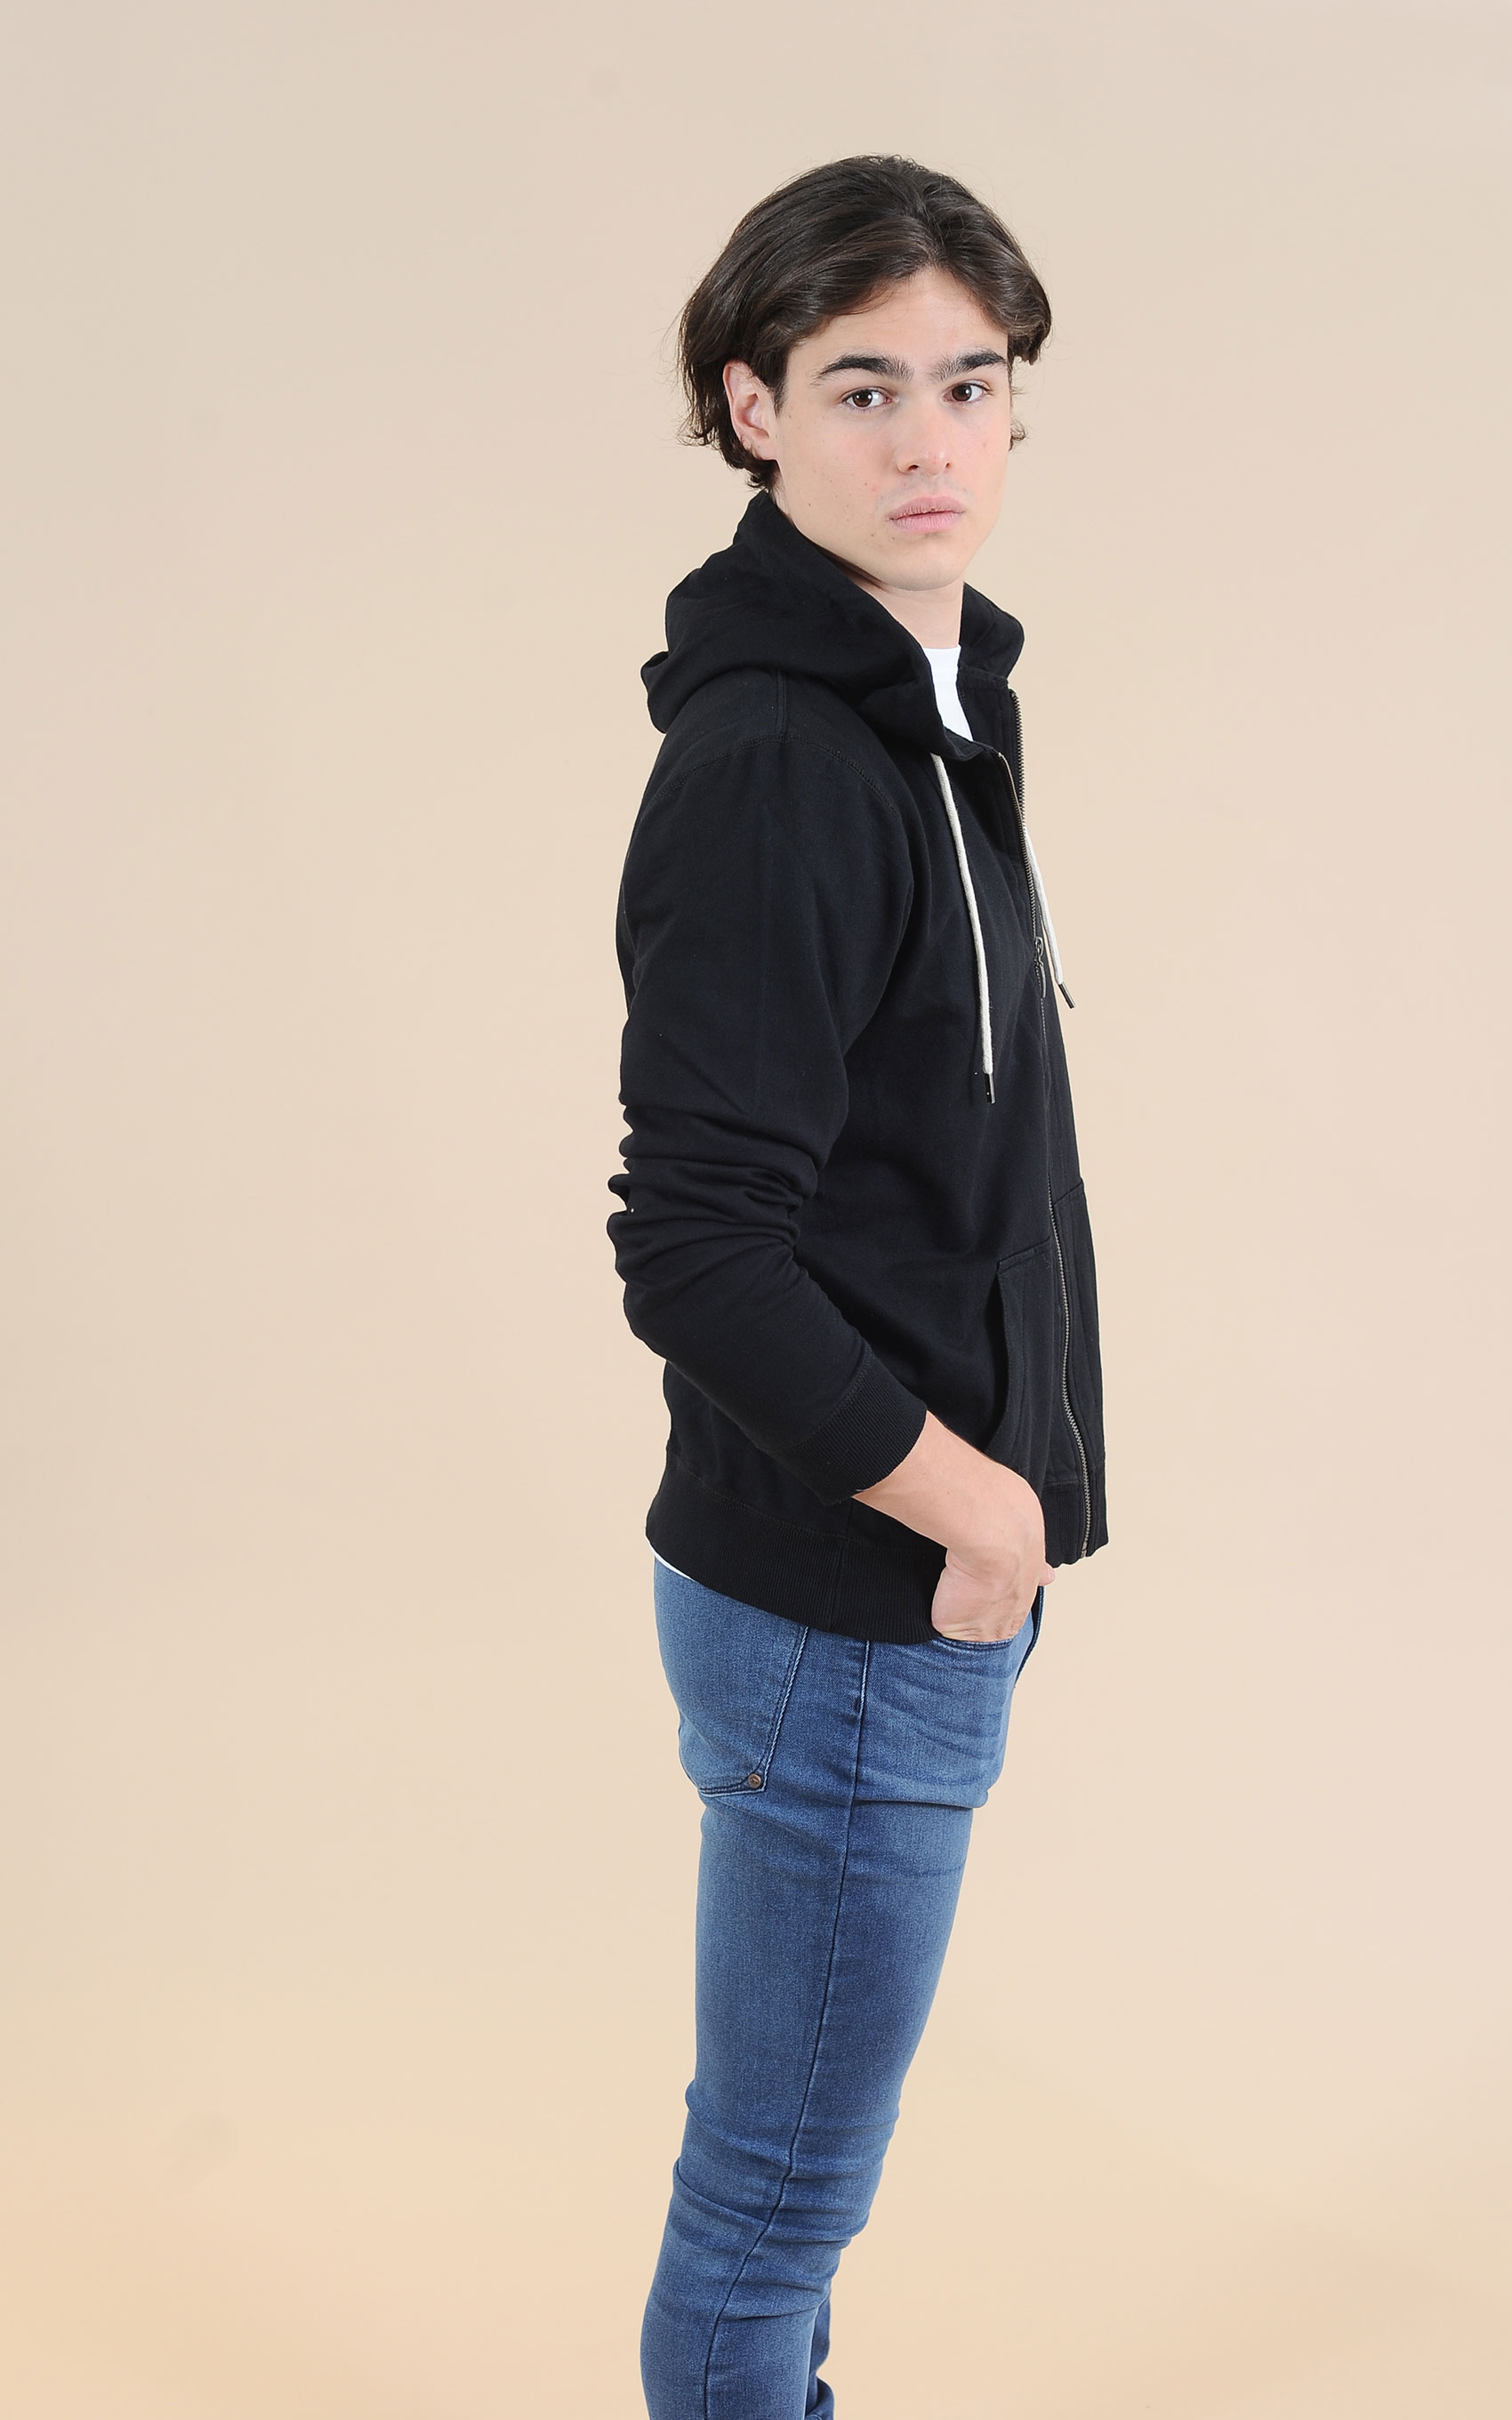 penguin_basic-hoody_43-18-2021__picture-17849